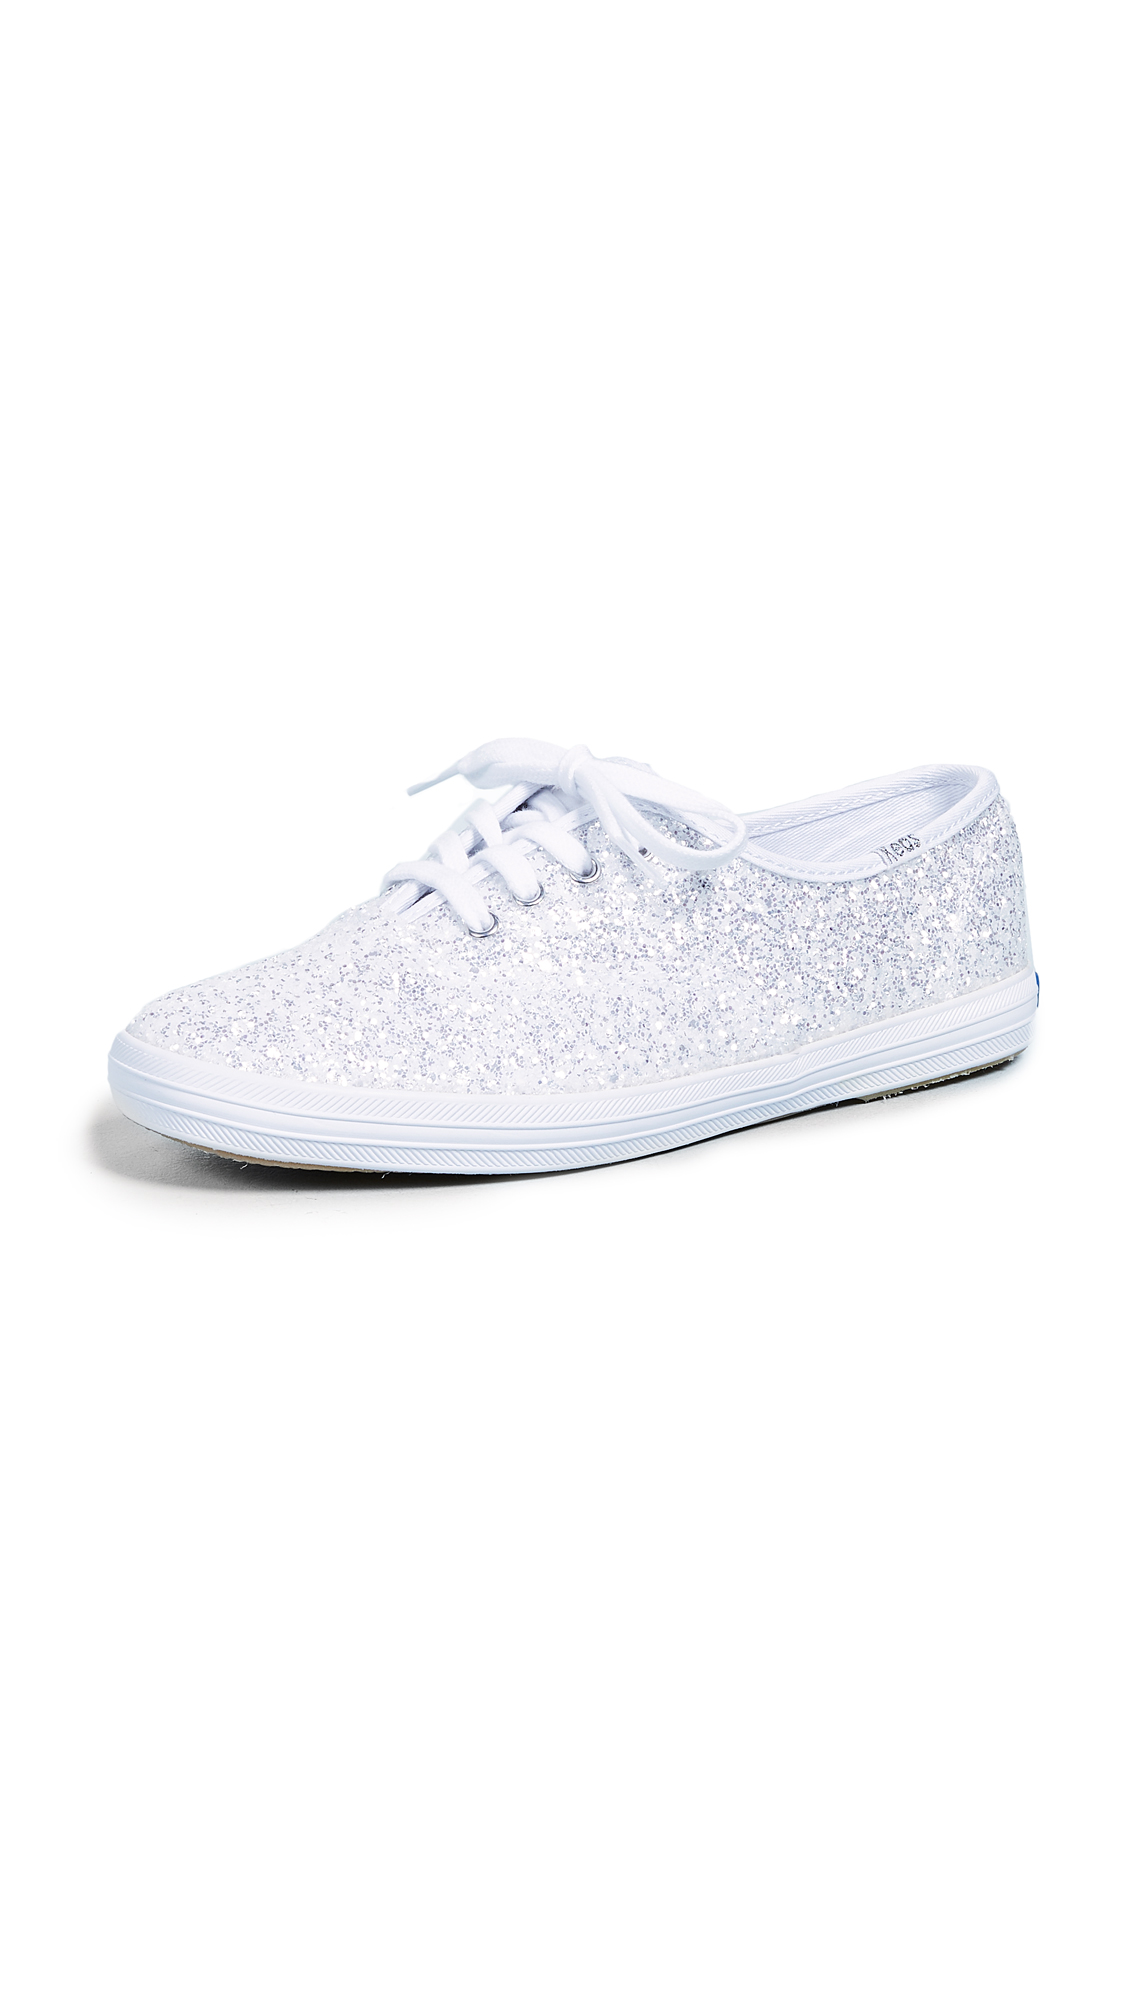 Keds x Kate Spade Champion Sneakers - White